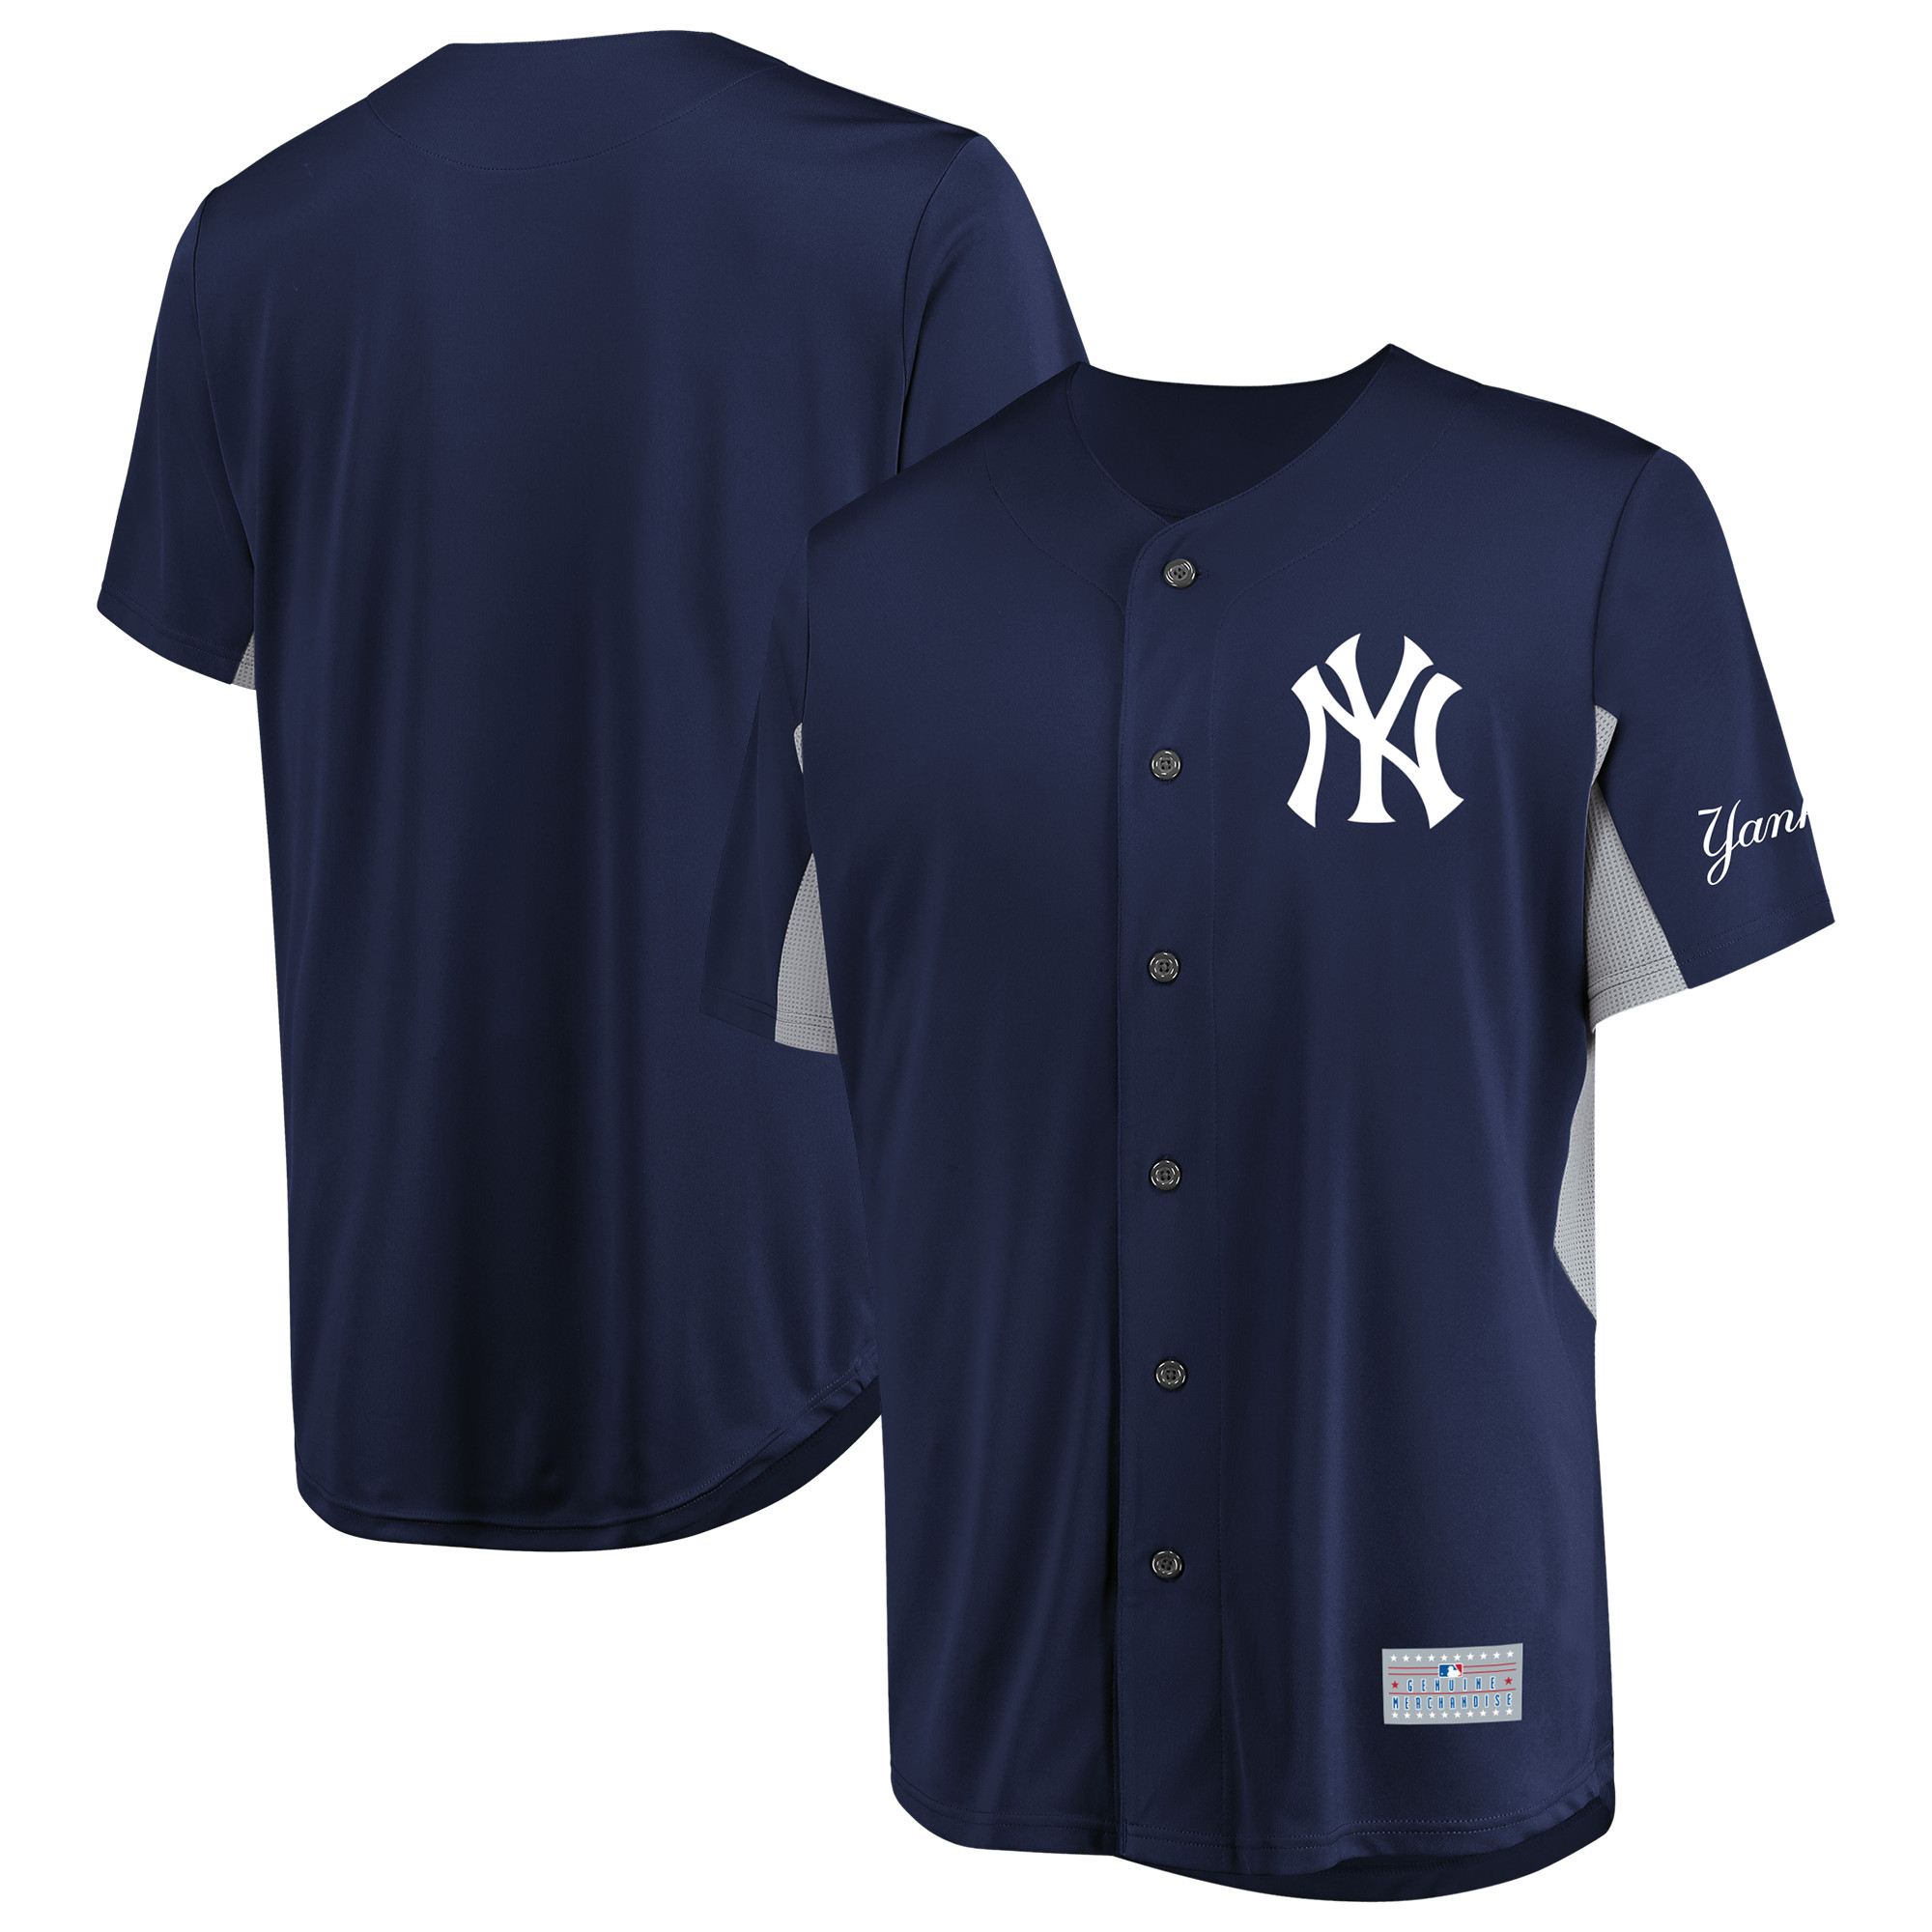 3574e5aeb New York Yankees Team Shop - Walmart.com